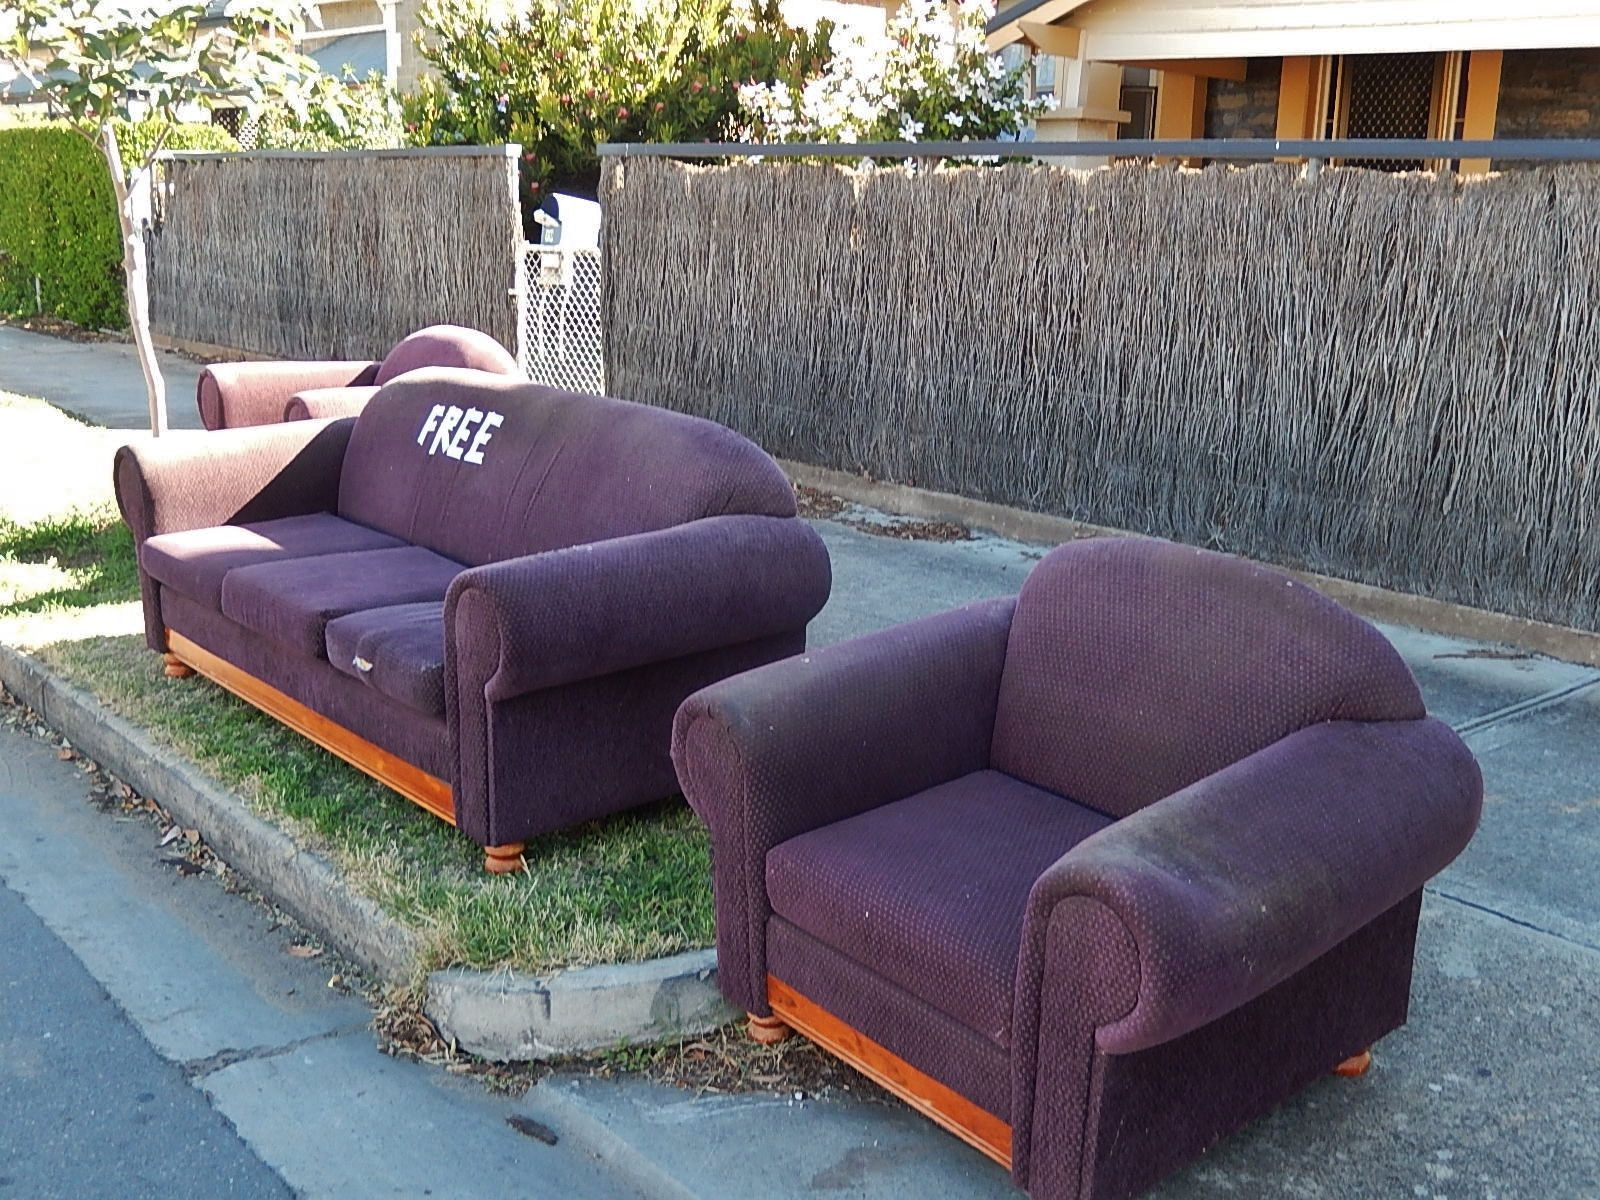 13 Ways to Get Rid of Unwanted Furniture